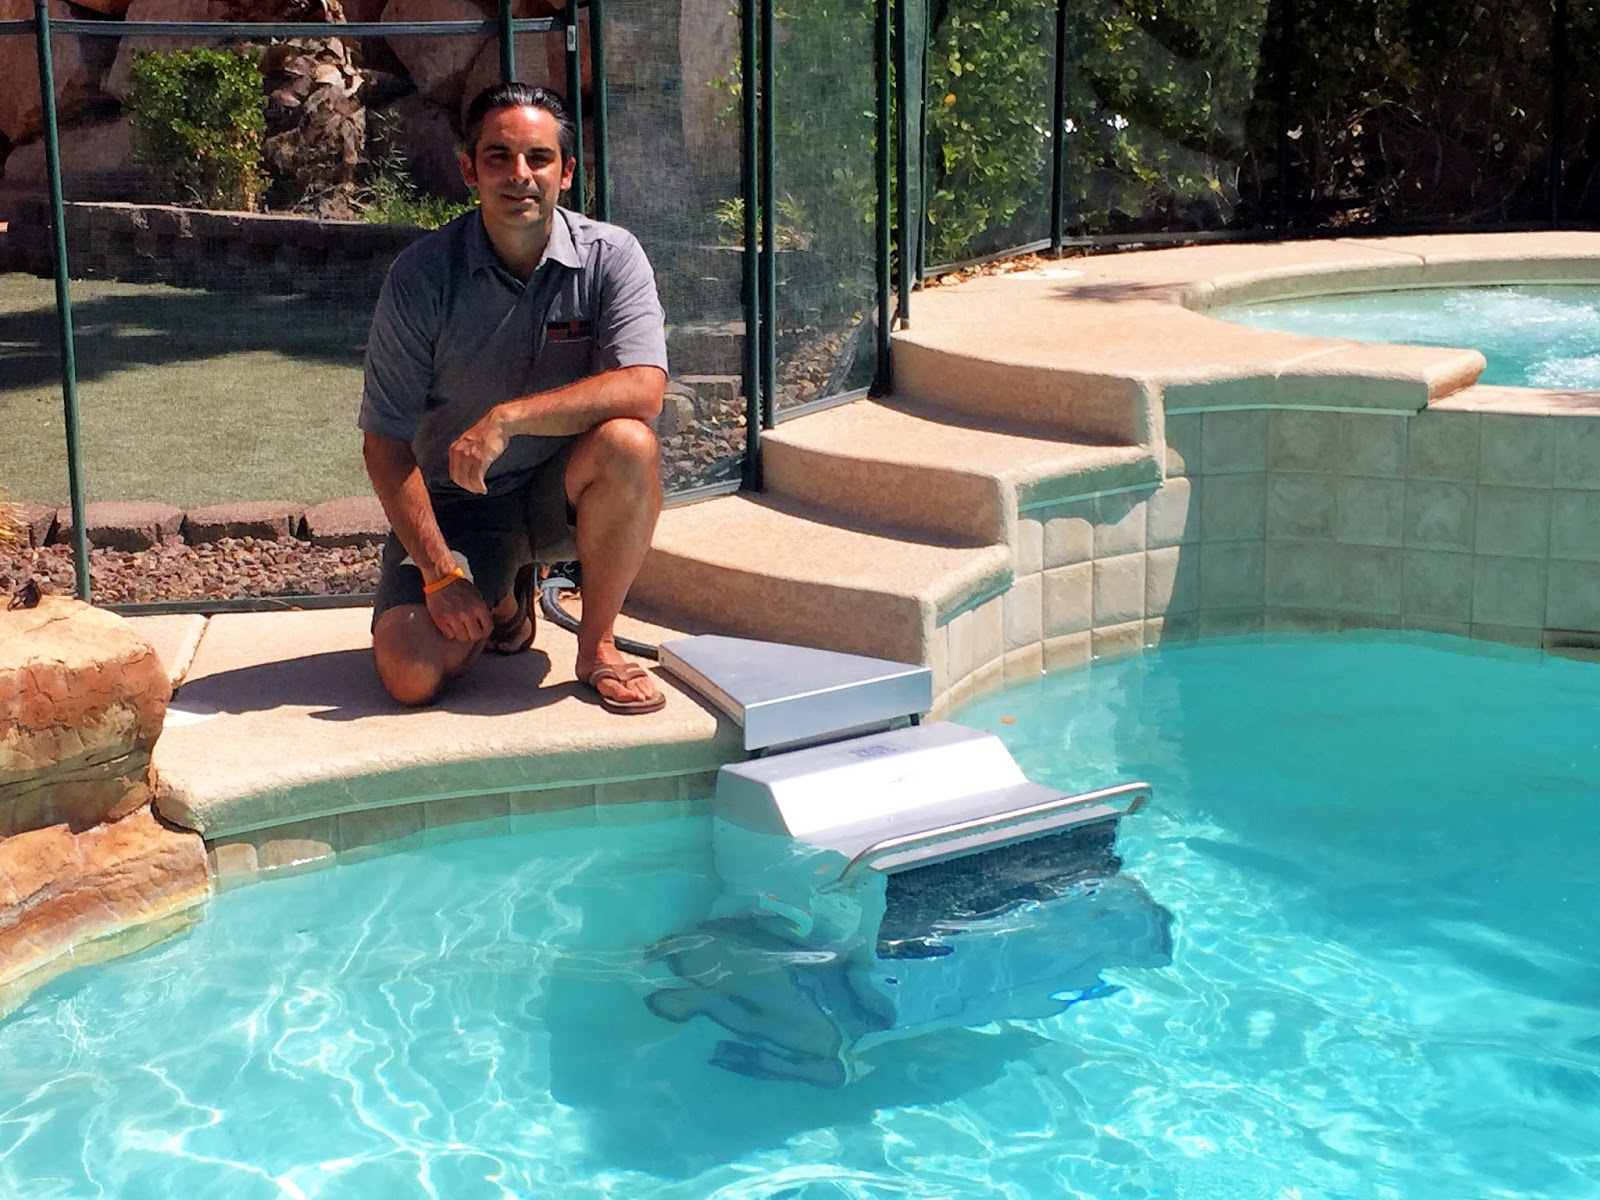 Pool with current to swim against - Triathlete Rod S With The Endless Pools Fastlane Installed In His Backyard Pool